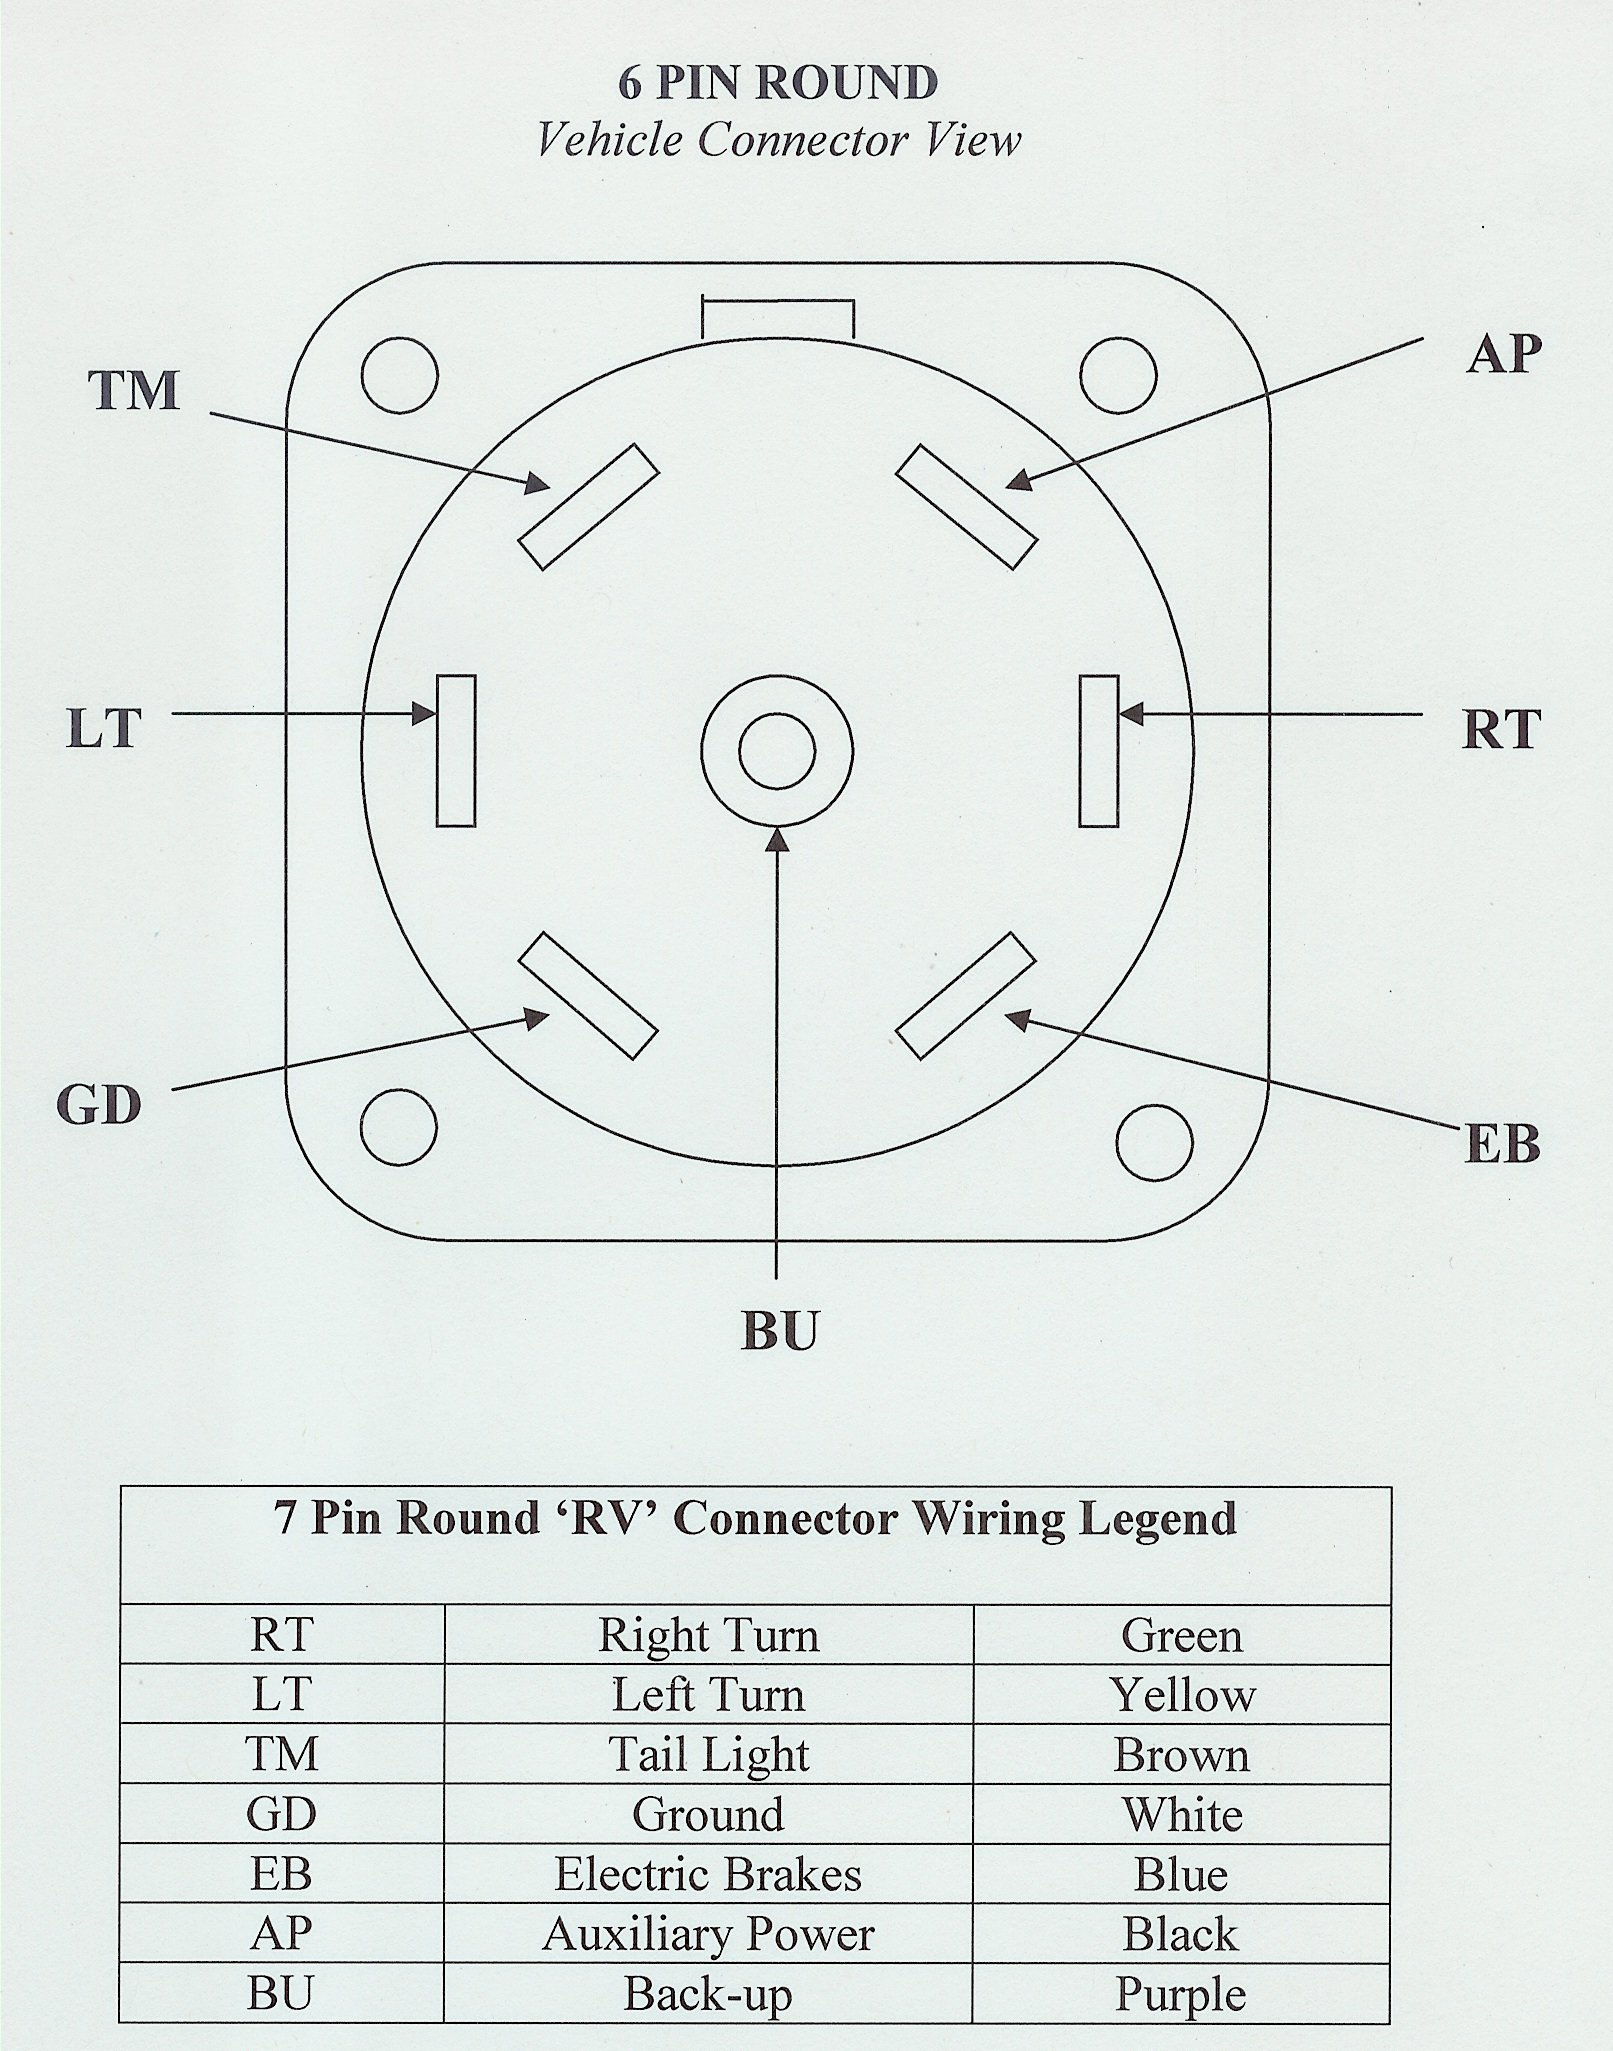 Kenwood Stereo Wiring Diagram Color Code in addition Pioneer Car Stereo Wiring Diagram Free Carlplant Arresting For A And moreover Alpine Cda 105 Wiring Diagram additionally Roper Dryer Red444ovq1 Wiring Schematic Model likewise Sony Cdx S2010 Wiring Diagram. on sony radio wiring diagram free printable